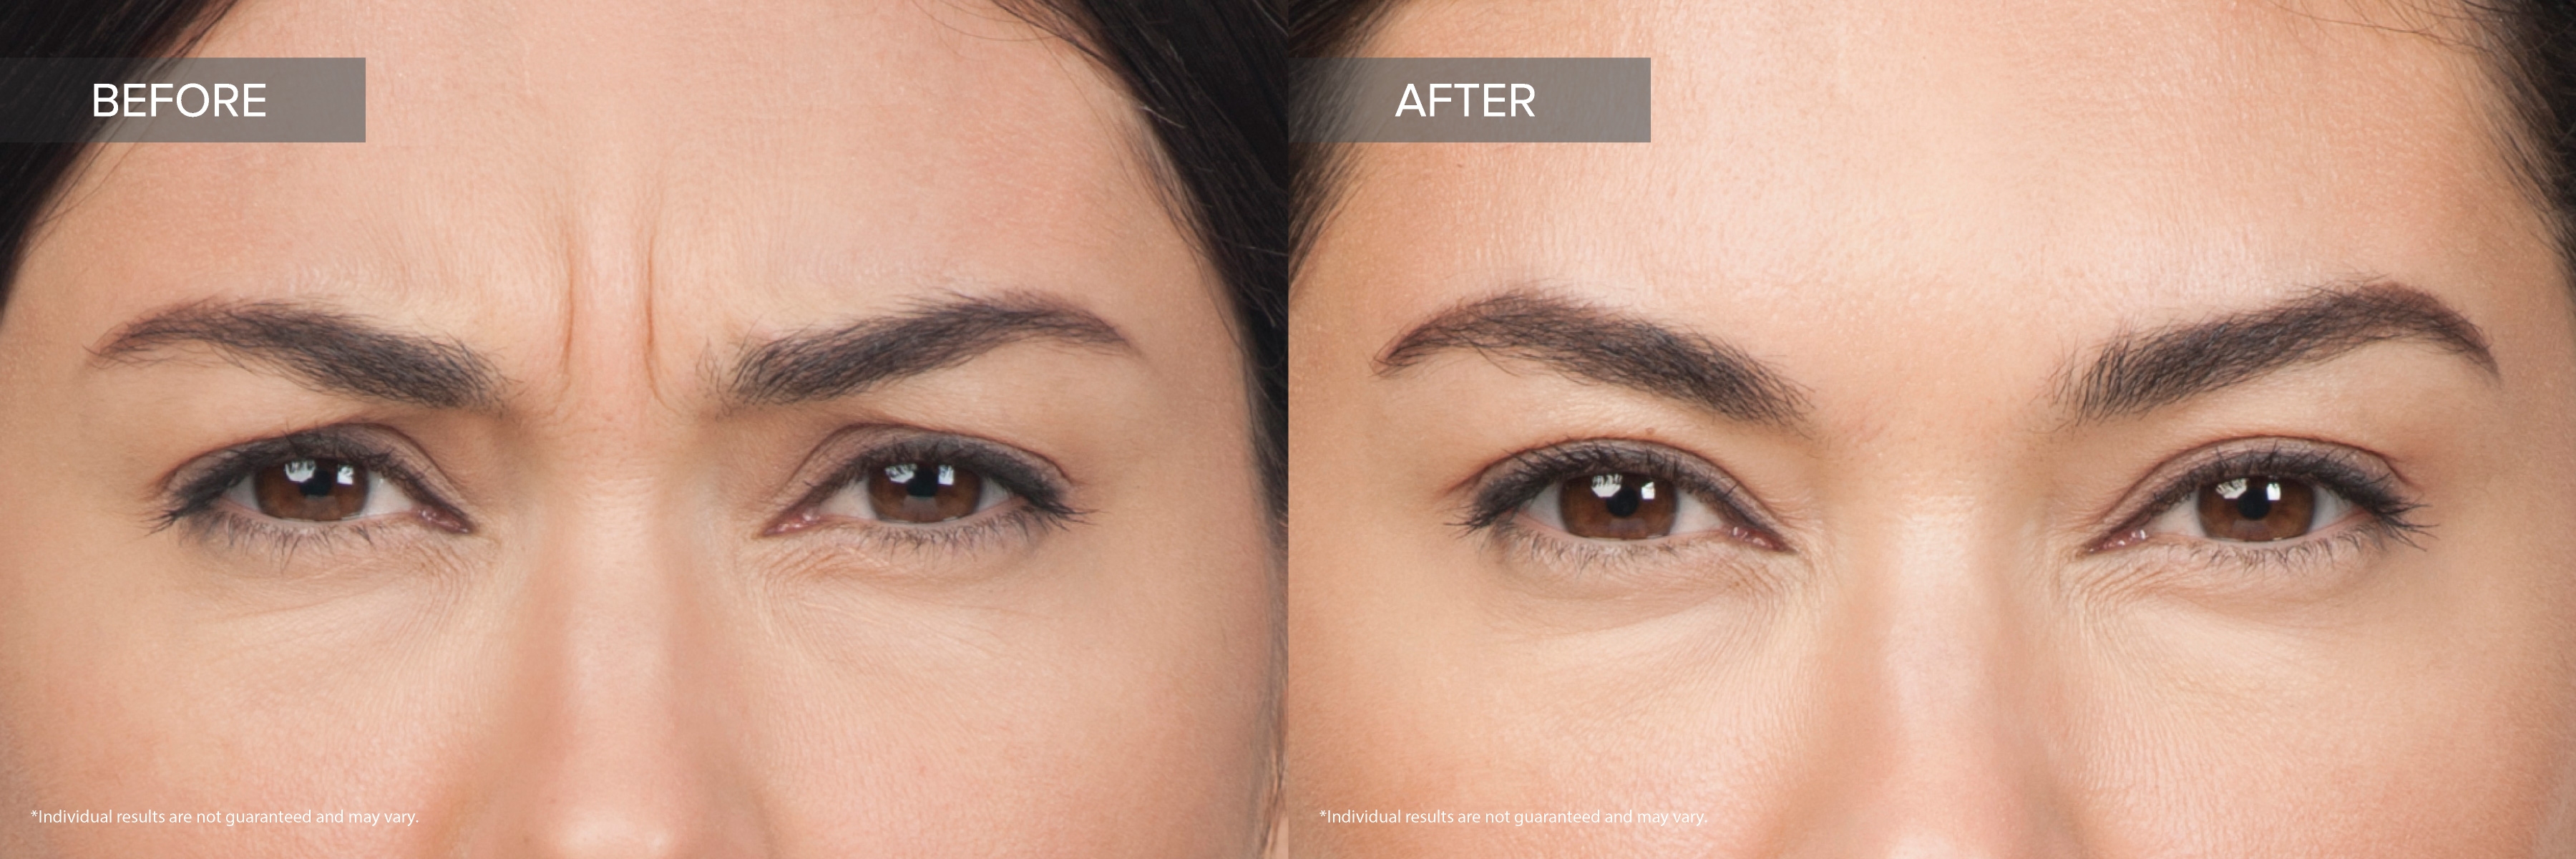 Botox Cosmetic - Moderate Frown Lines